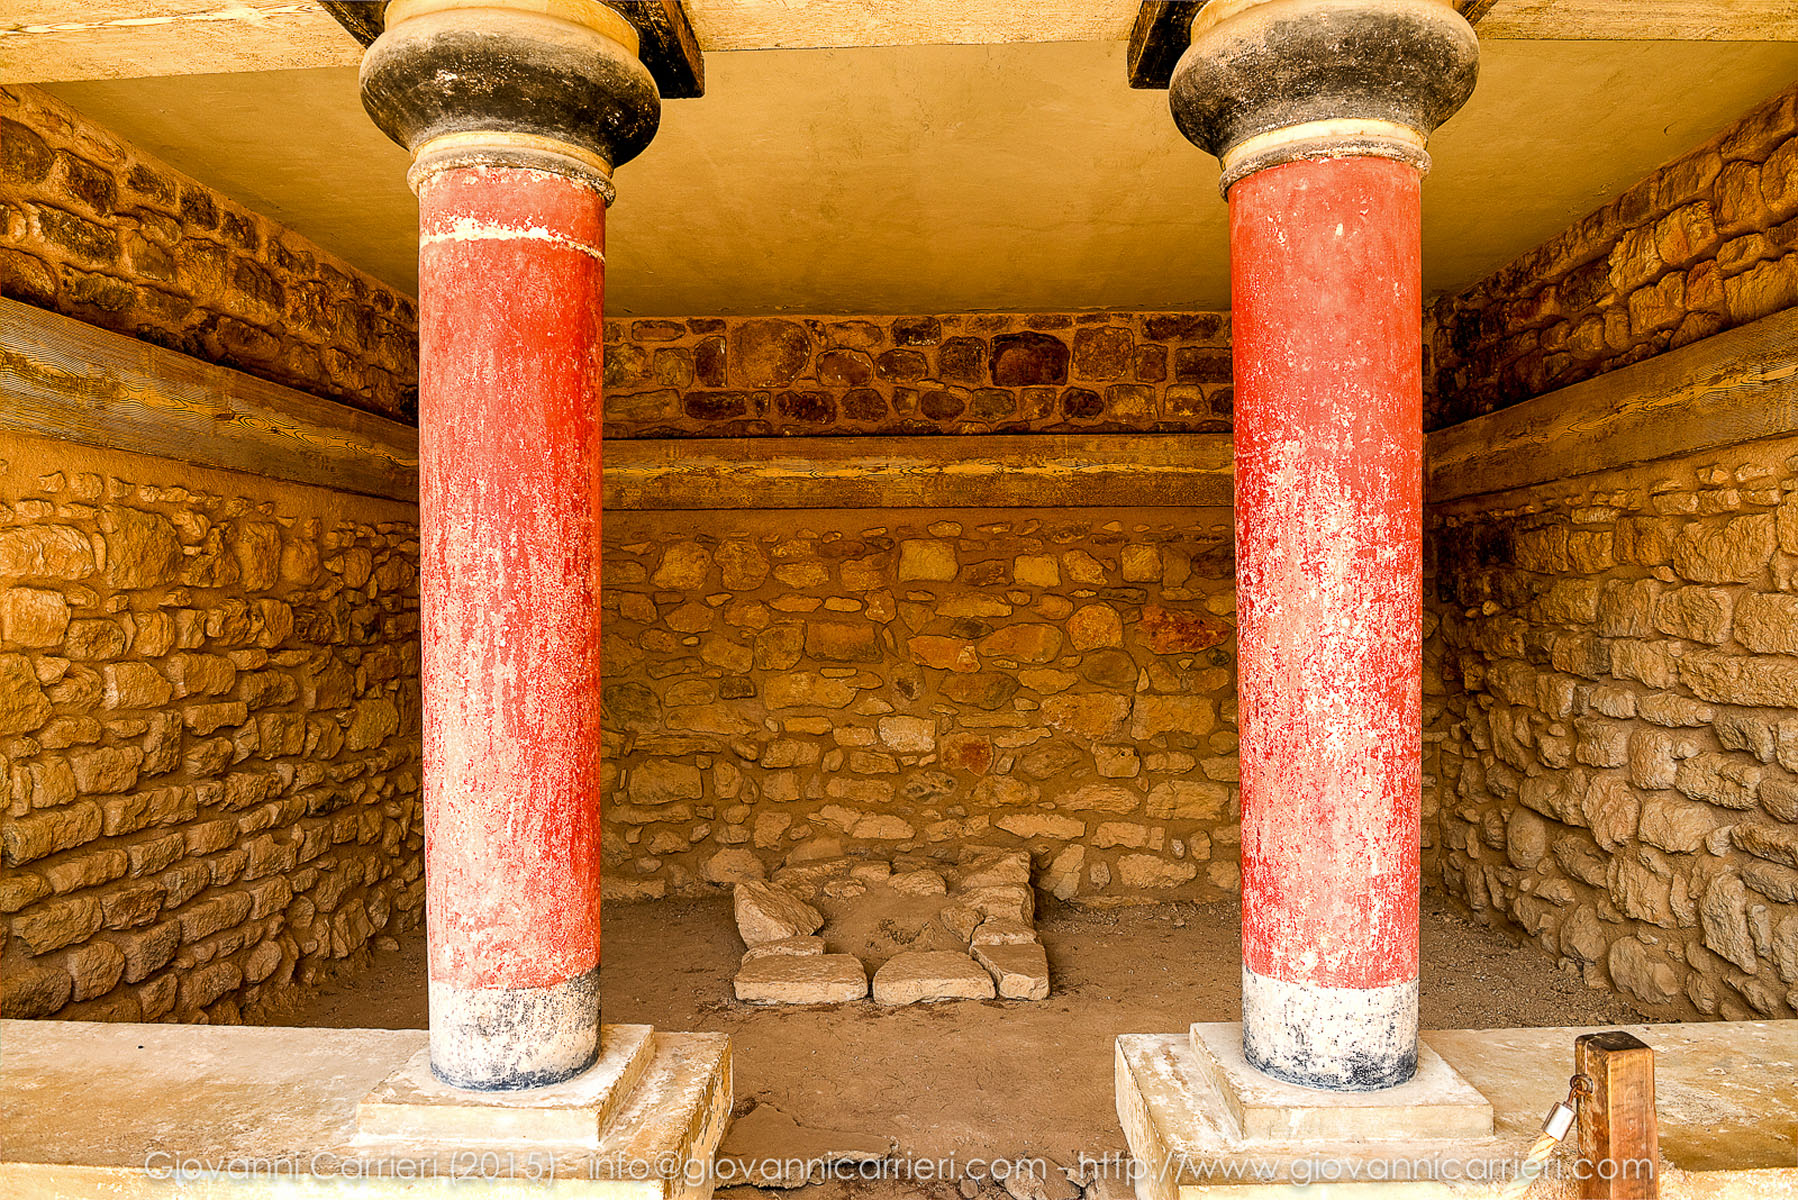 Minoan columns in Knossos Palace